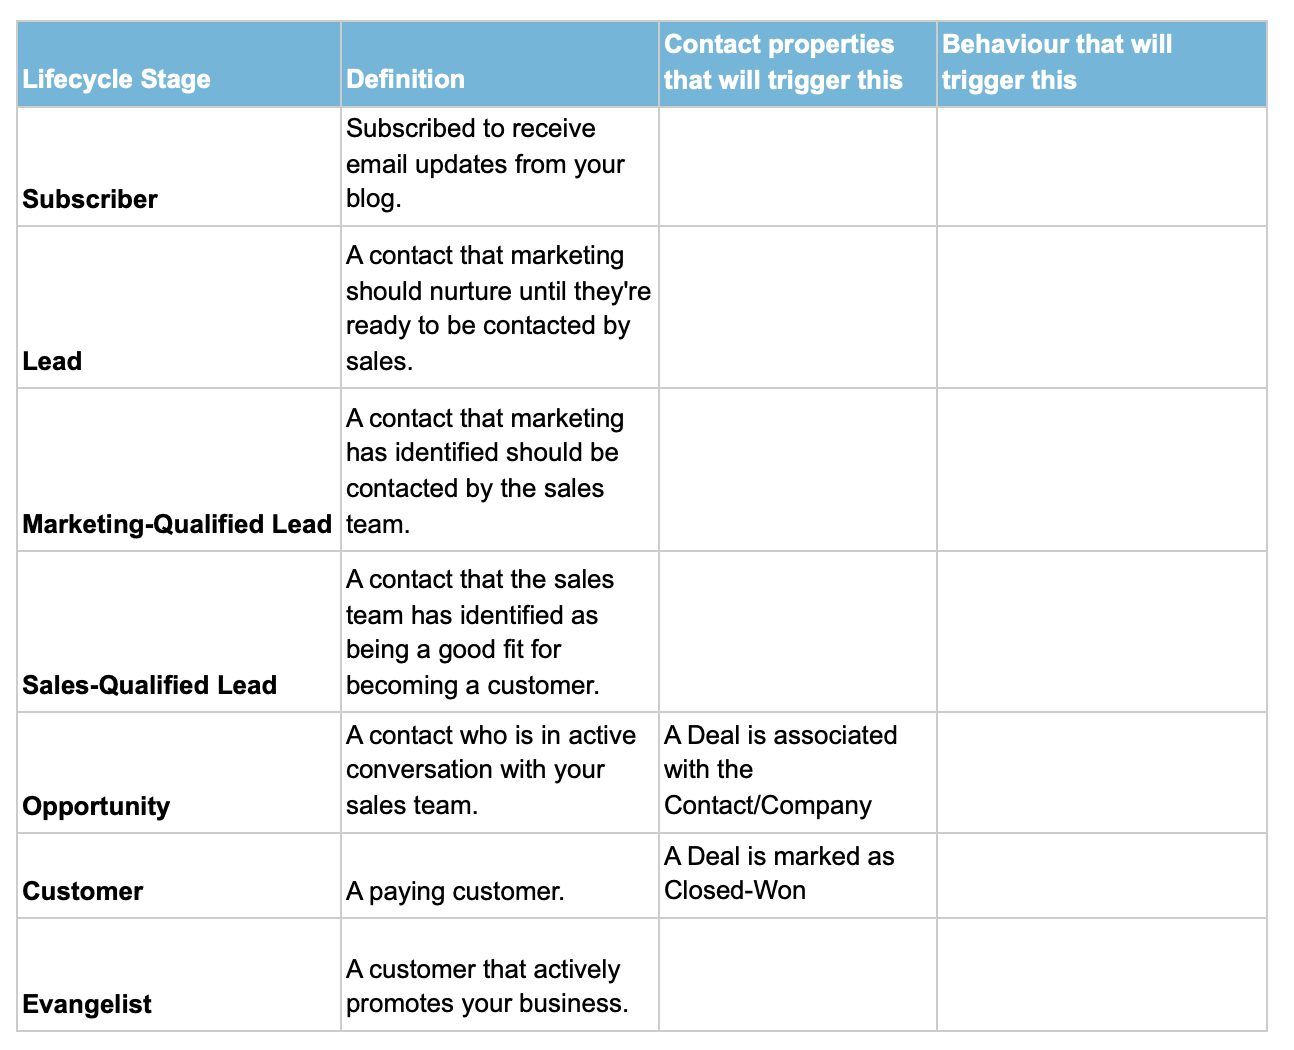 lifecycle stages table